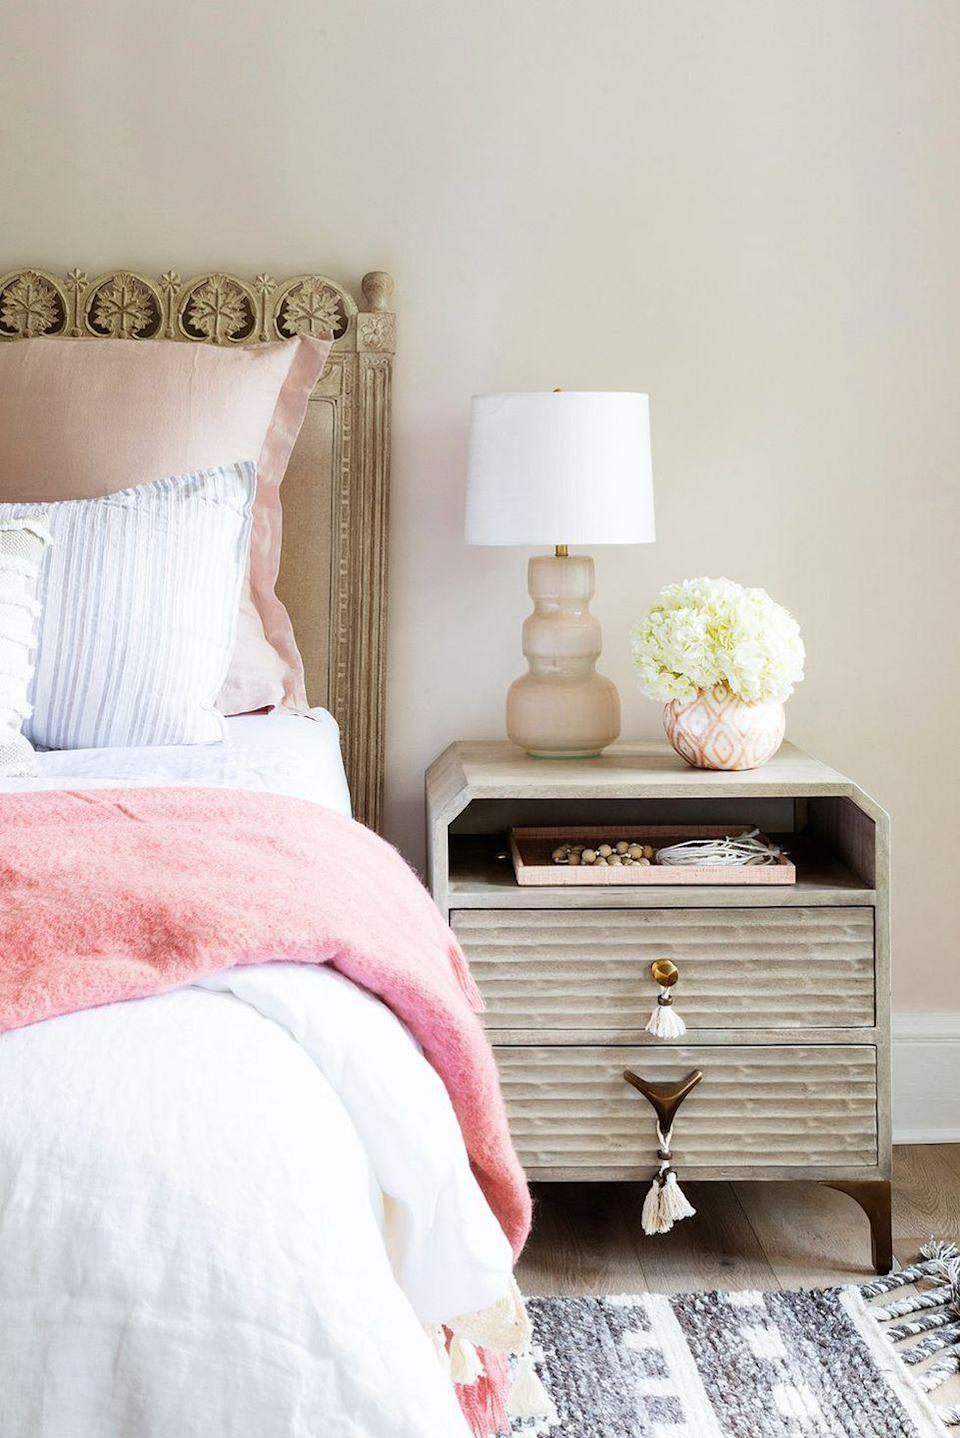 <p>It's all in the details: Hang ivory tassels on drawer knobs to make a modern nightstand look more bohemian. </p>